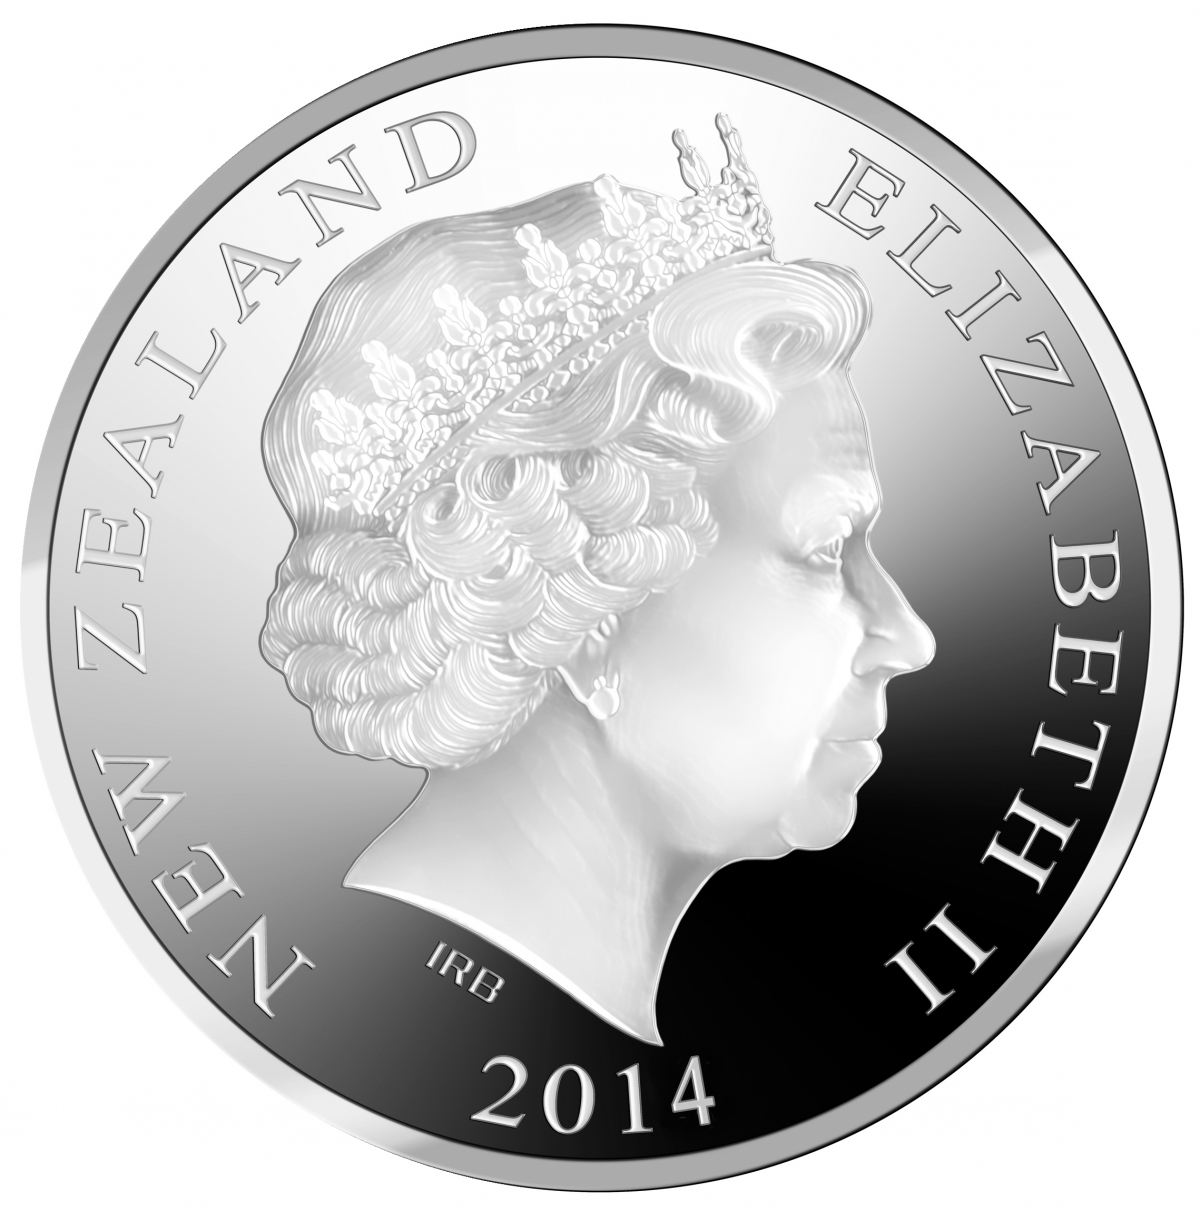 New Zealand Posts royal coin